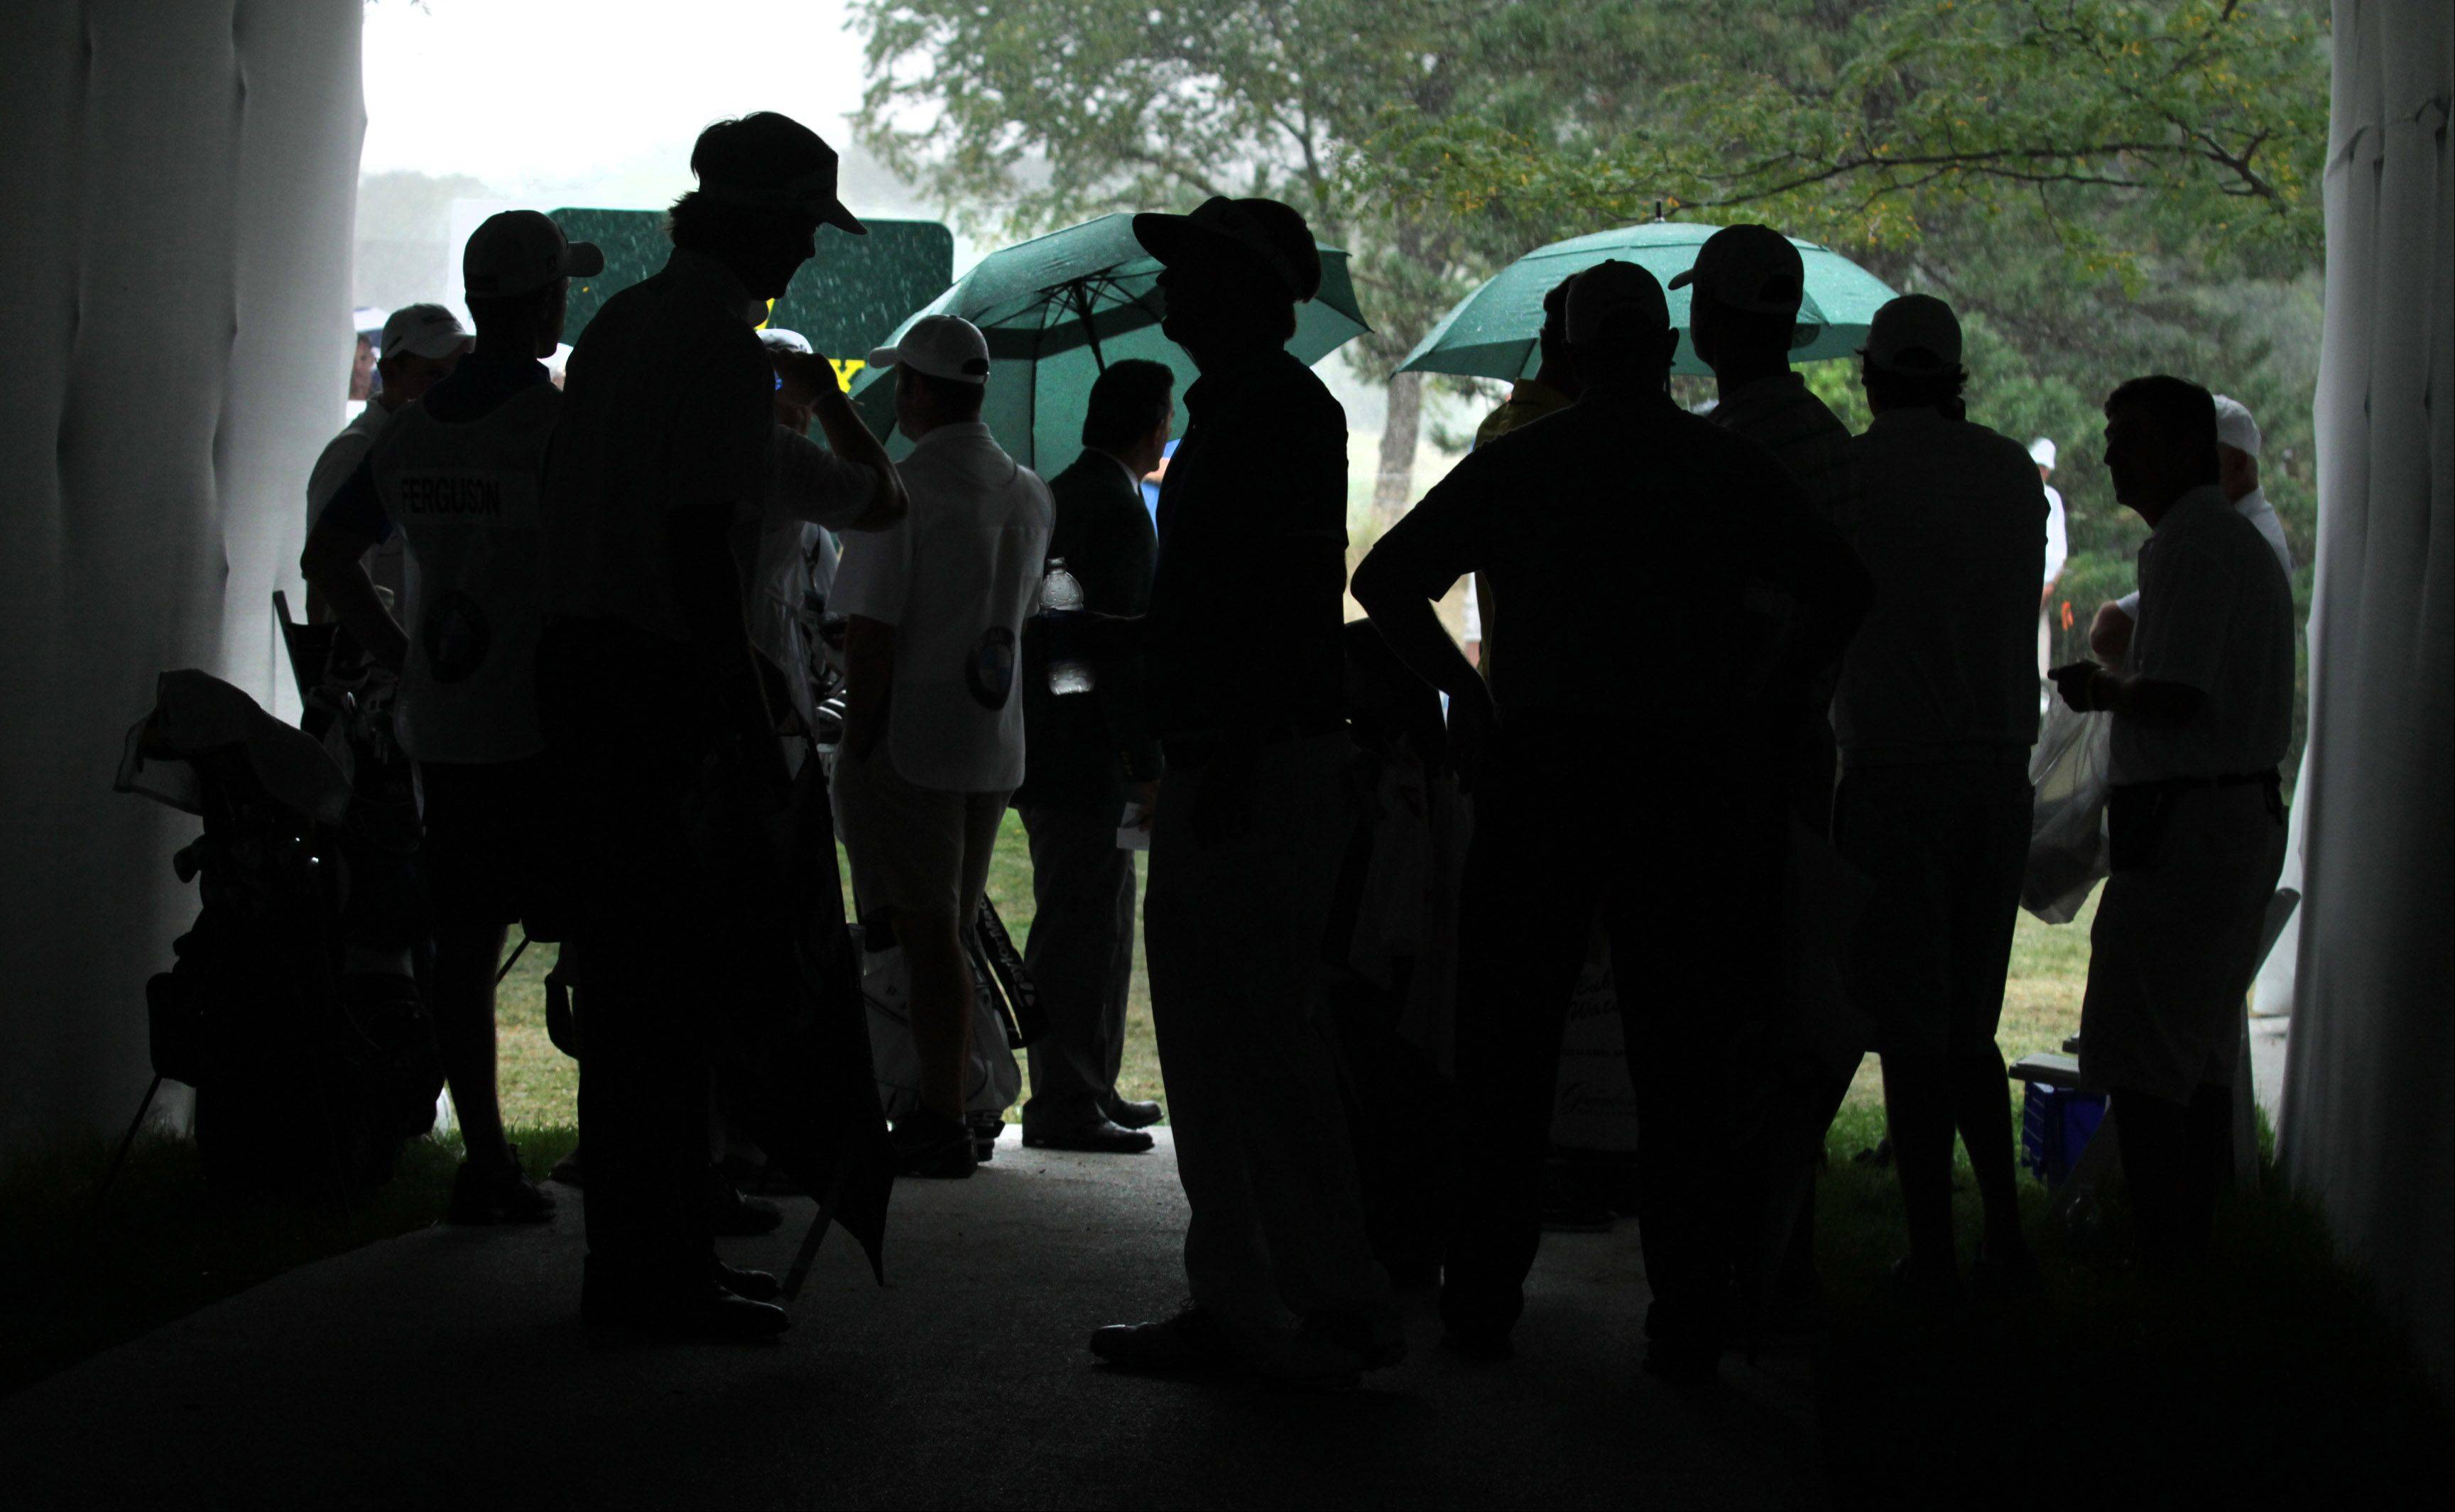 Golfers and caddies wait in a tunnel during a brief rain storm at the tenth hole.